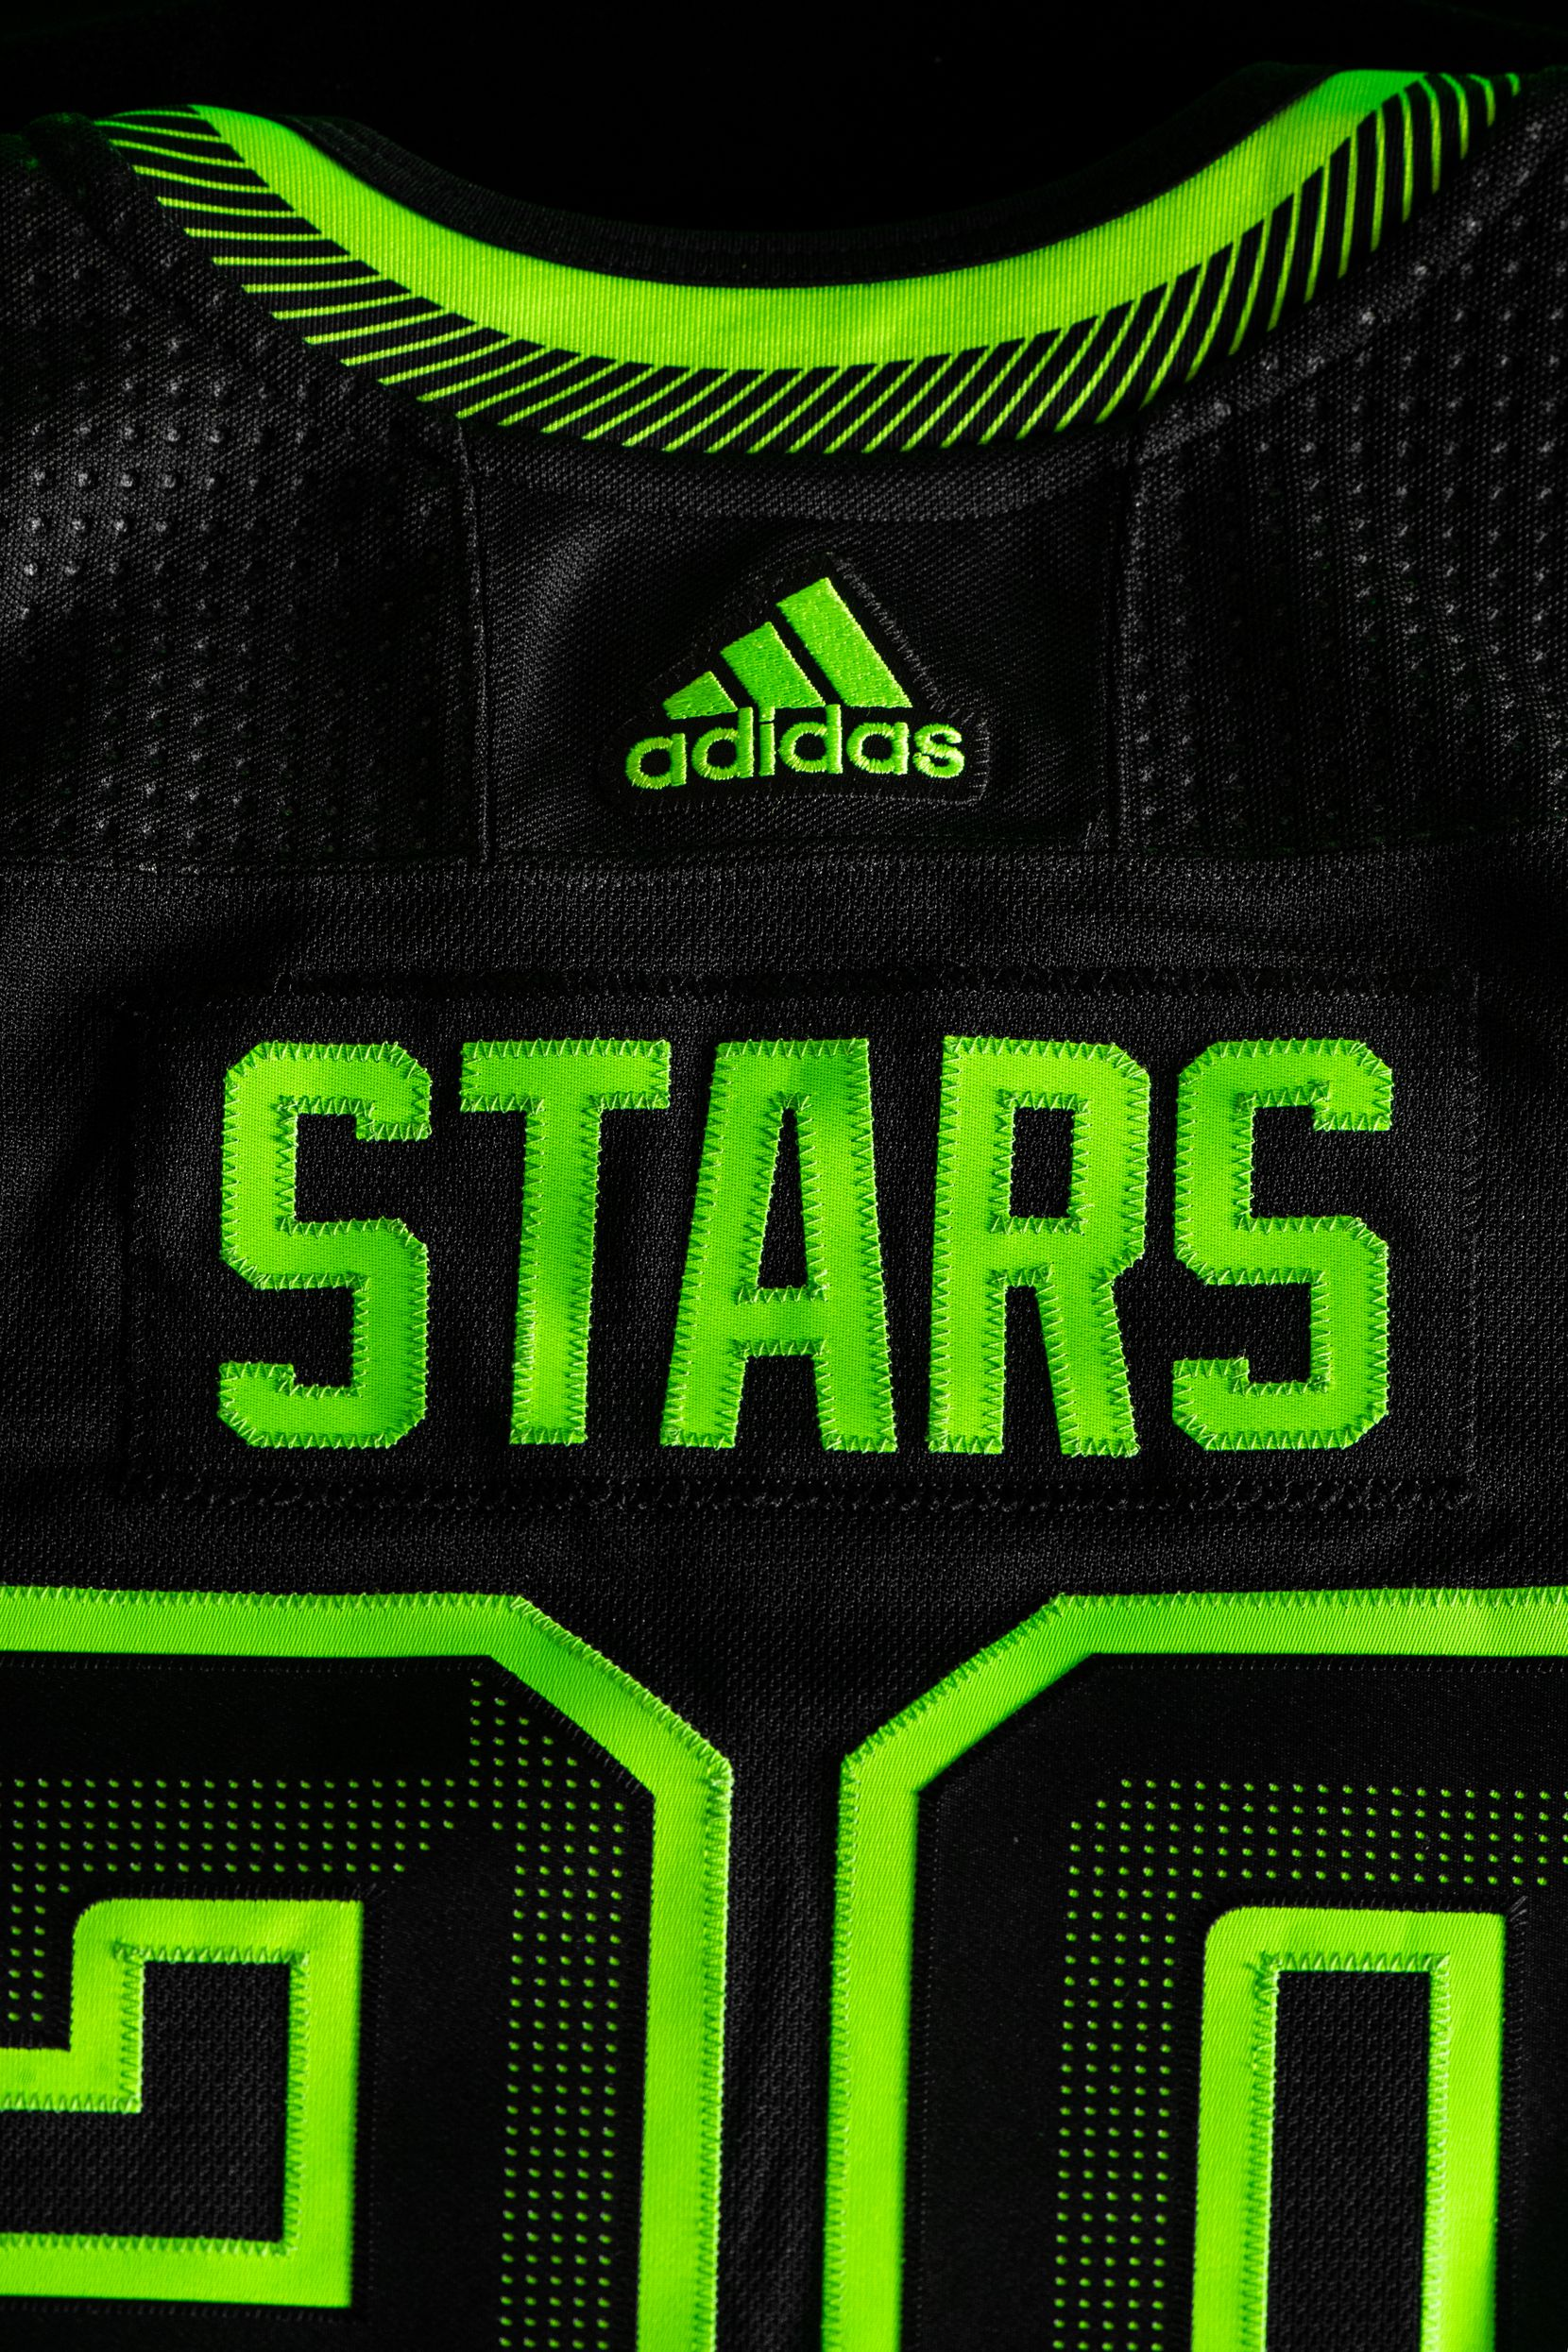 """The Dallas Stars revealed their new third jersey on Wednesday morning """"black out"""" By the team and by using the color neon green the team called it """"Skyline Green."""""""